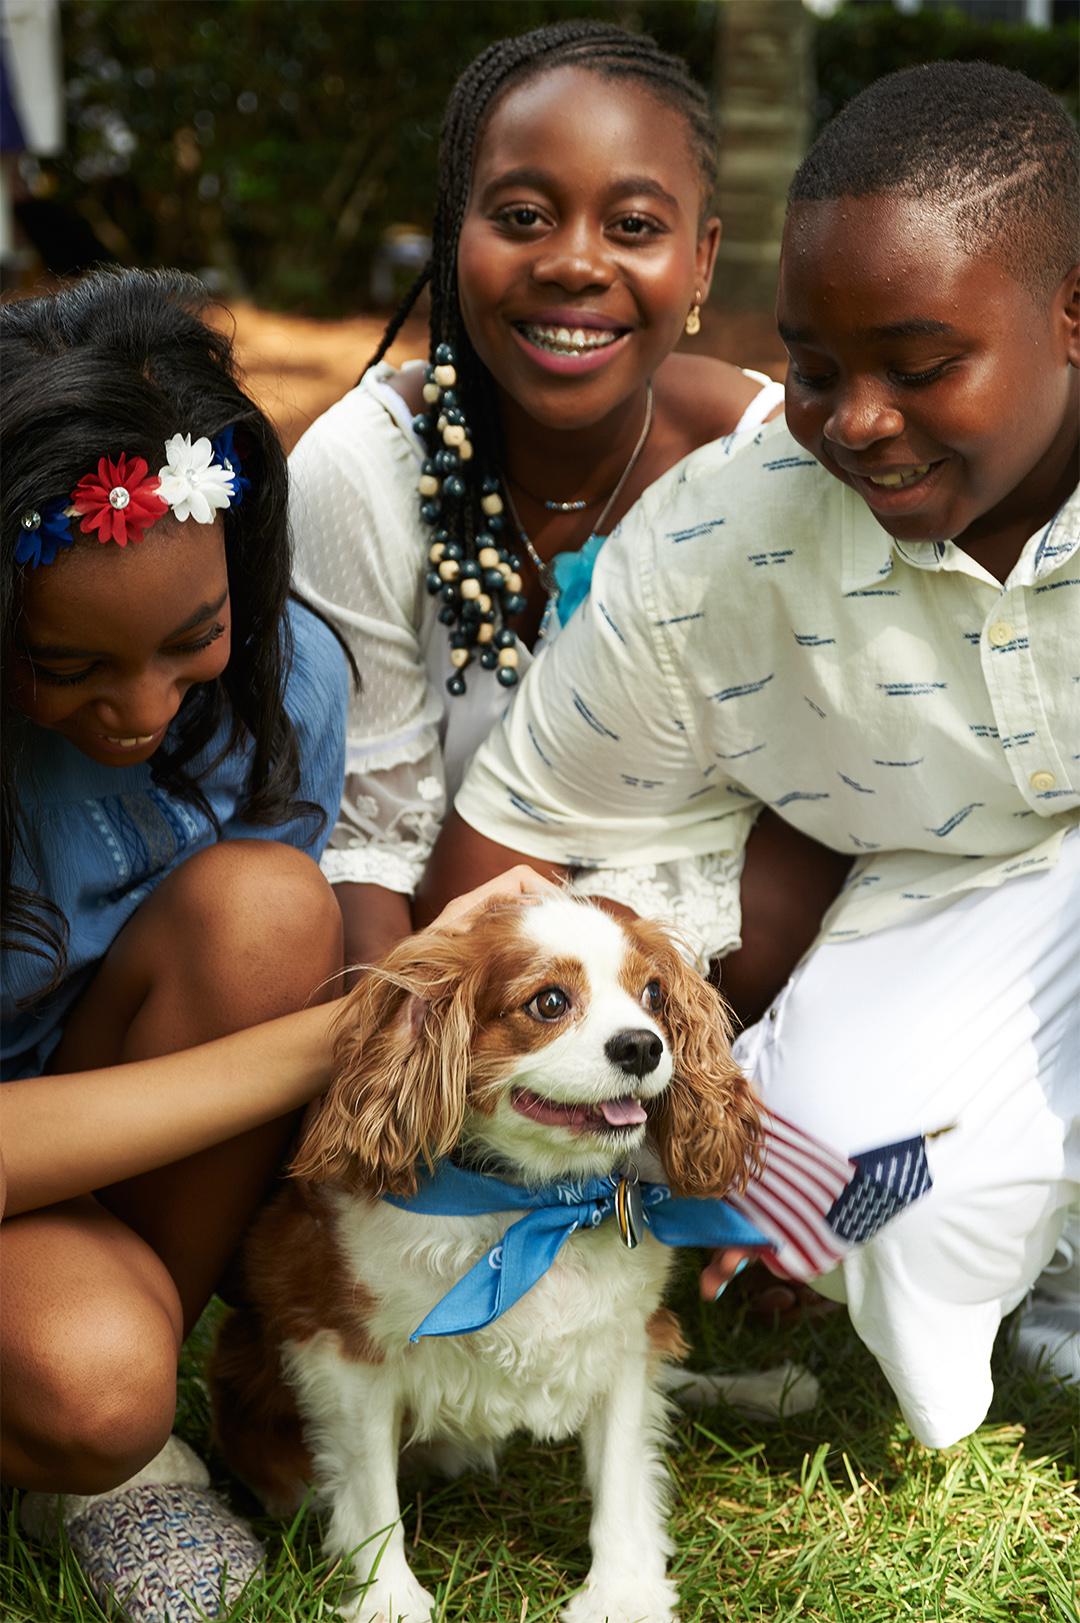 The Most Effective Ways to Calm Stressed Pets During Fireworks